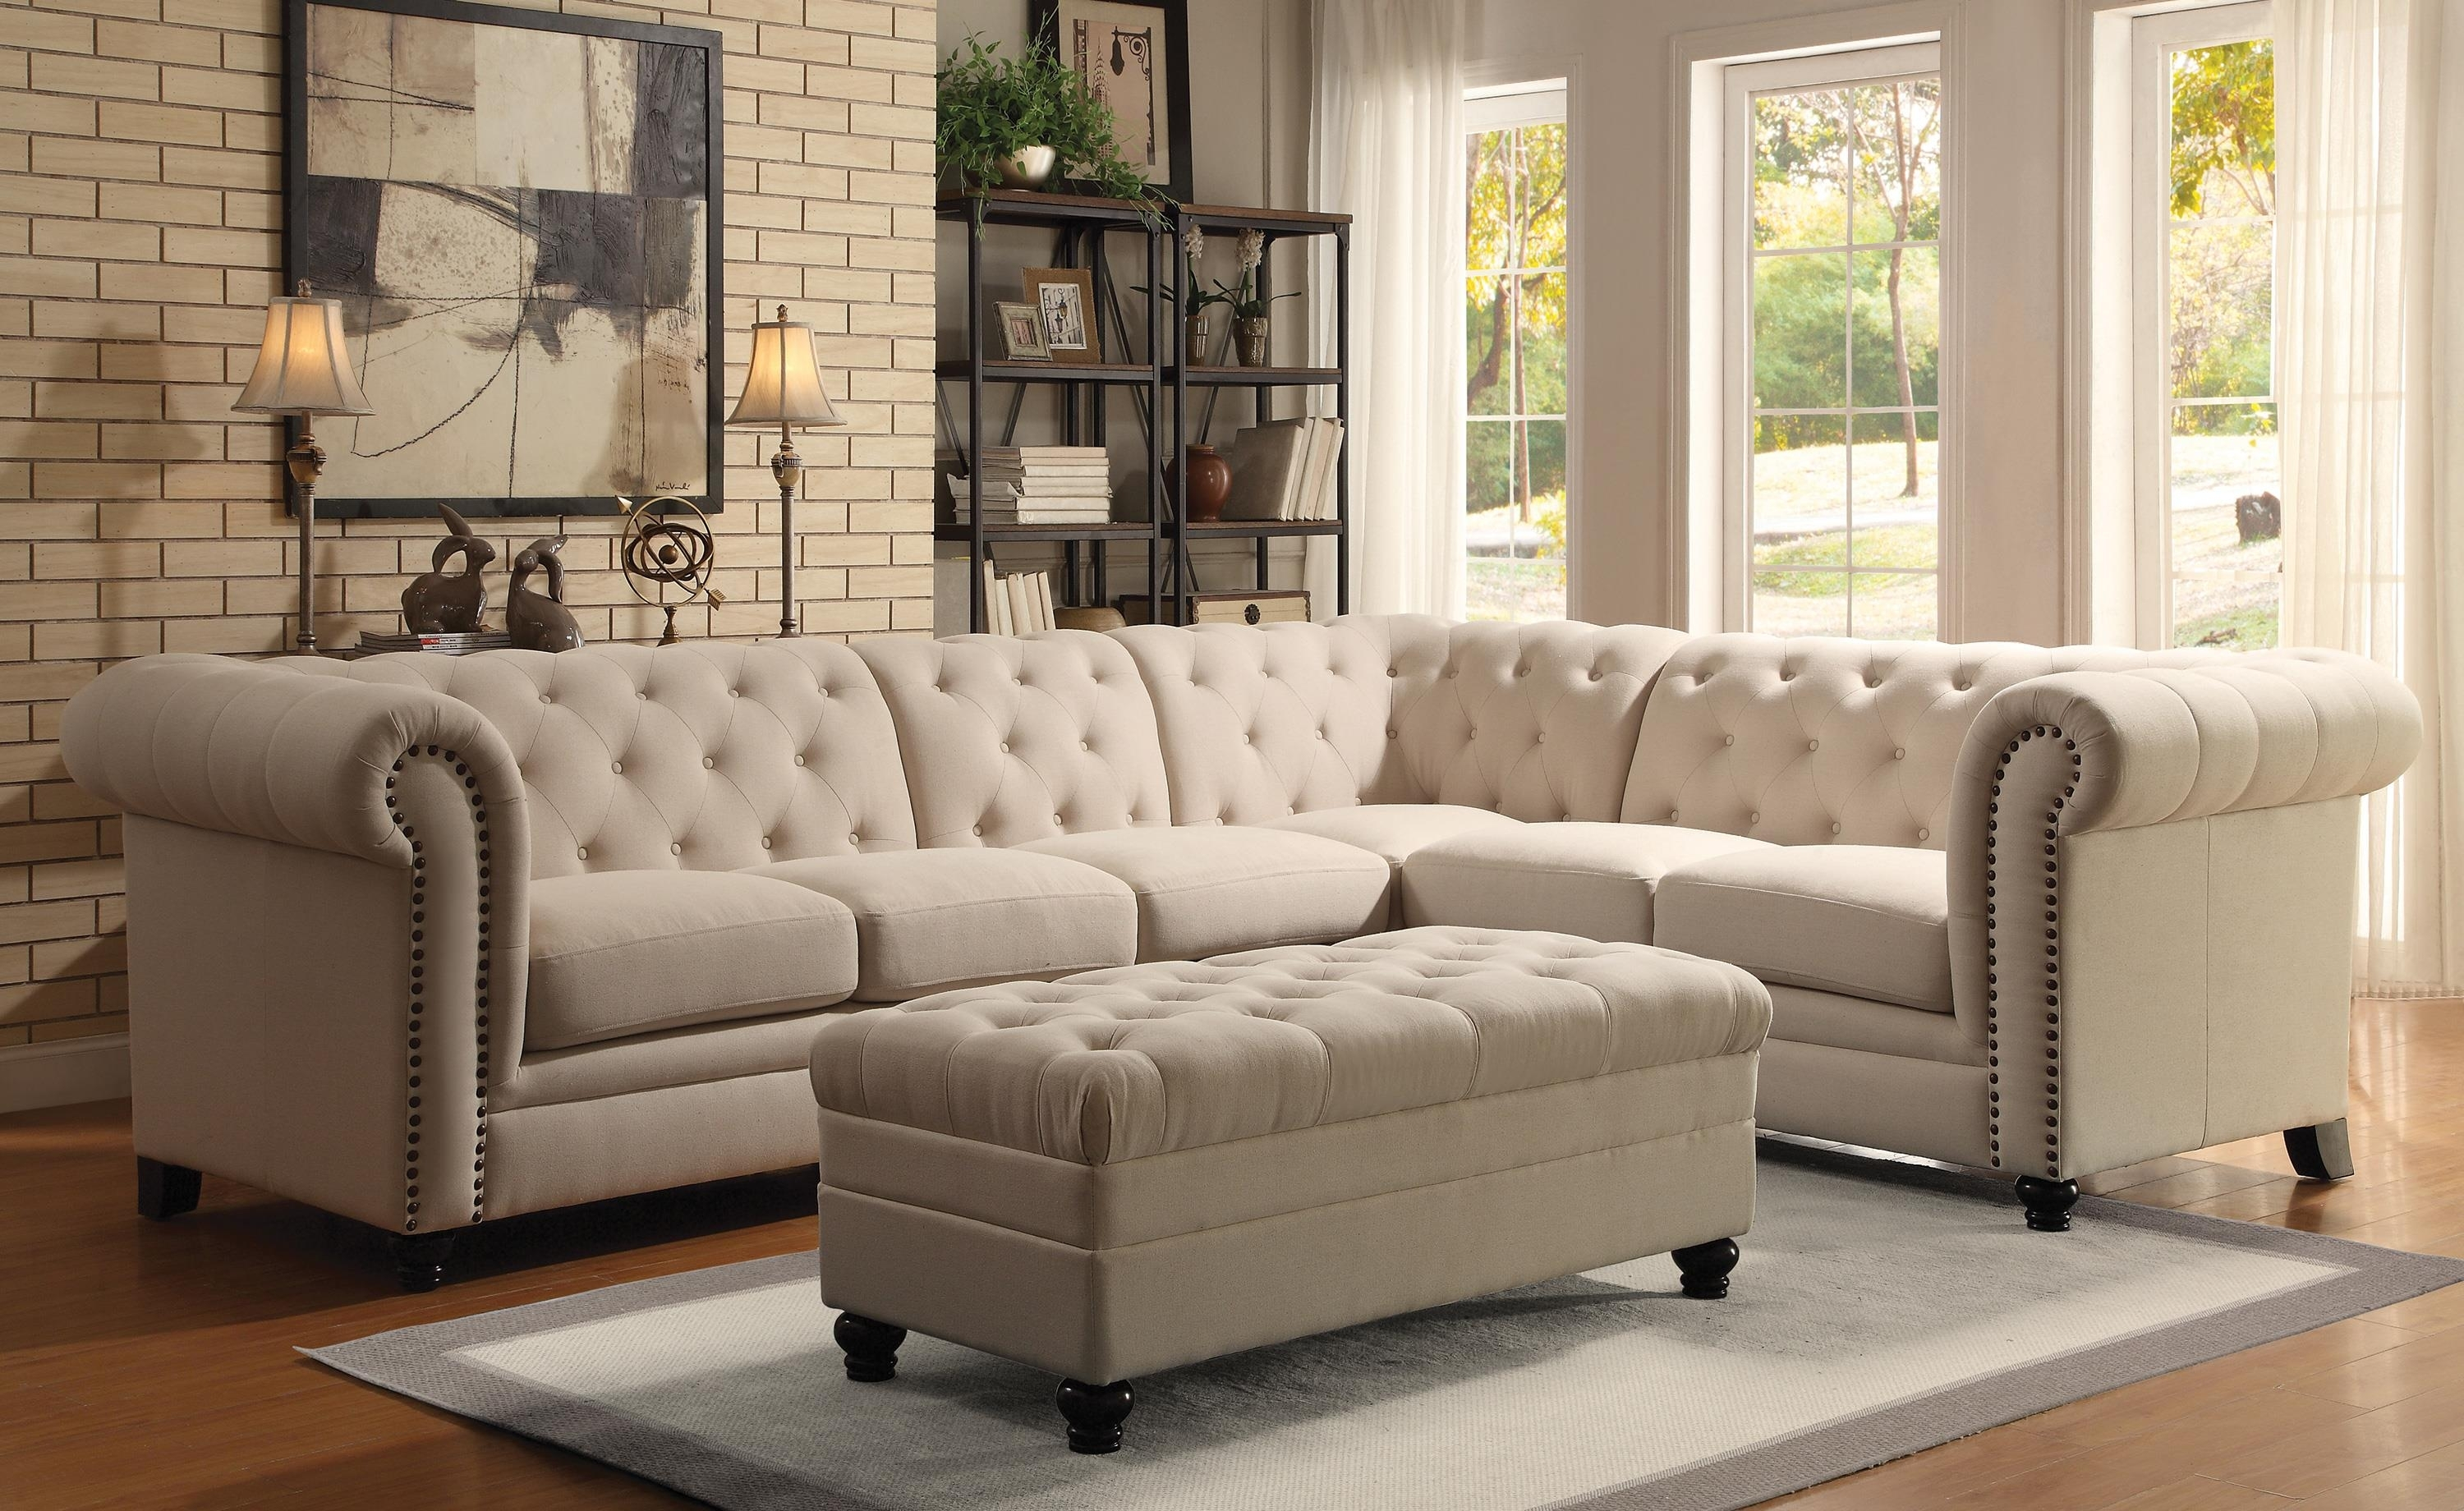 Coaster Roy Button Tufted Sectional Sofa With Armless Chair | A1 Intended For Janesville Wi Sectional Sofas (Image 3 of 10)